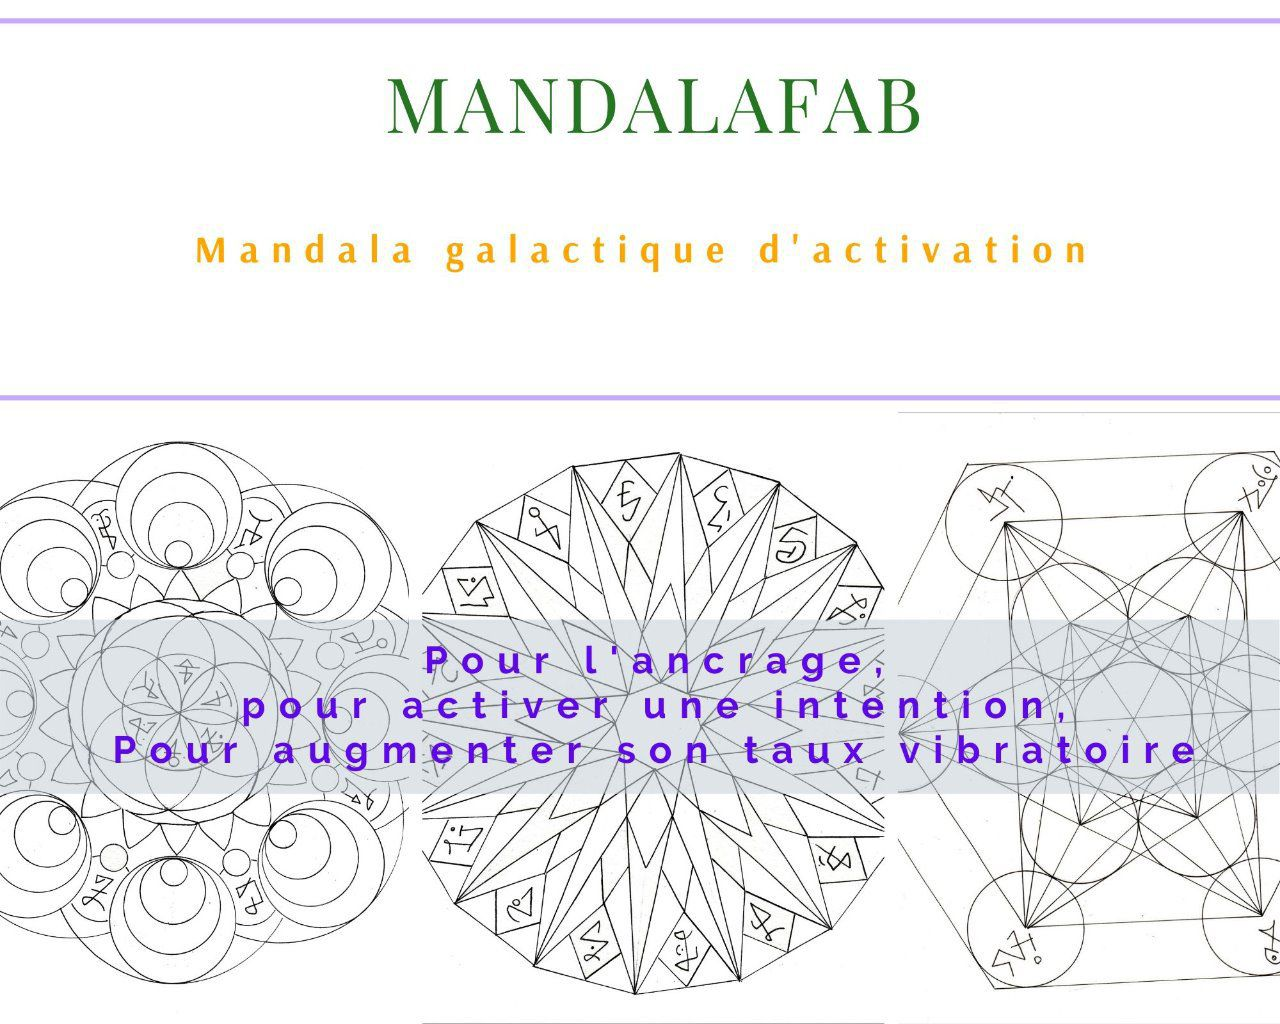 Ancrage, Intention, Taux vibratoire